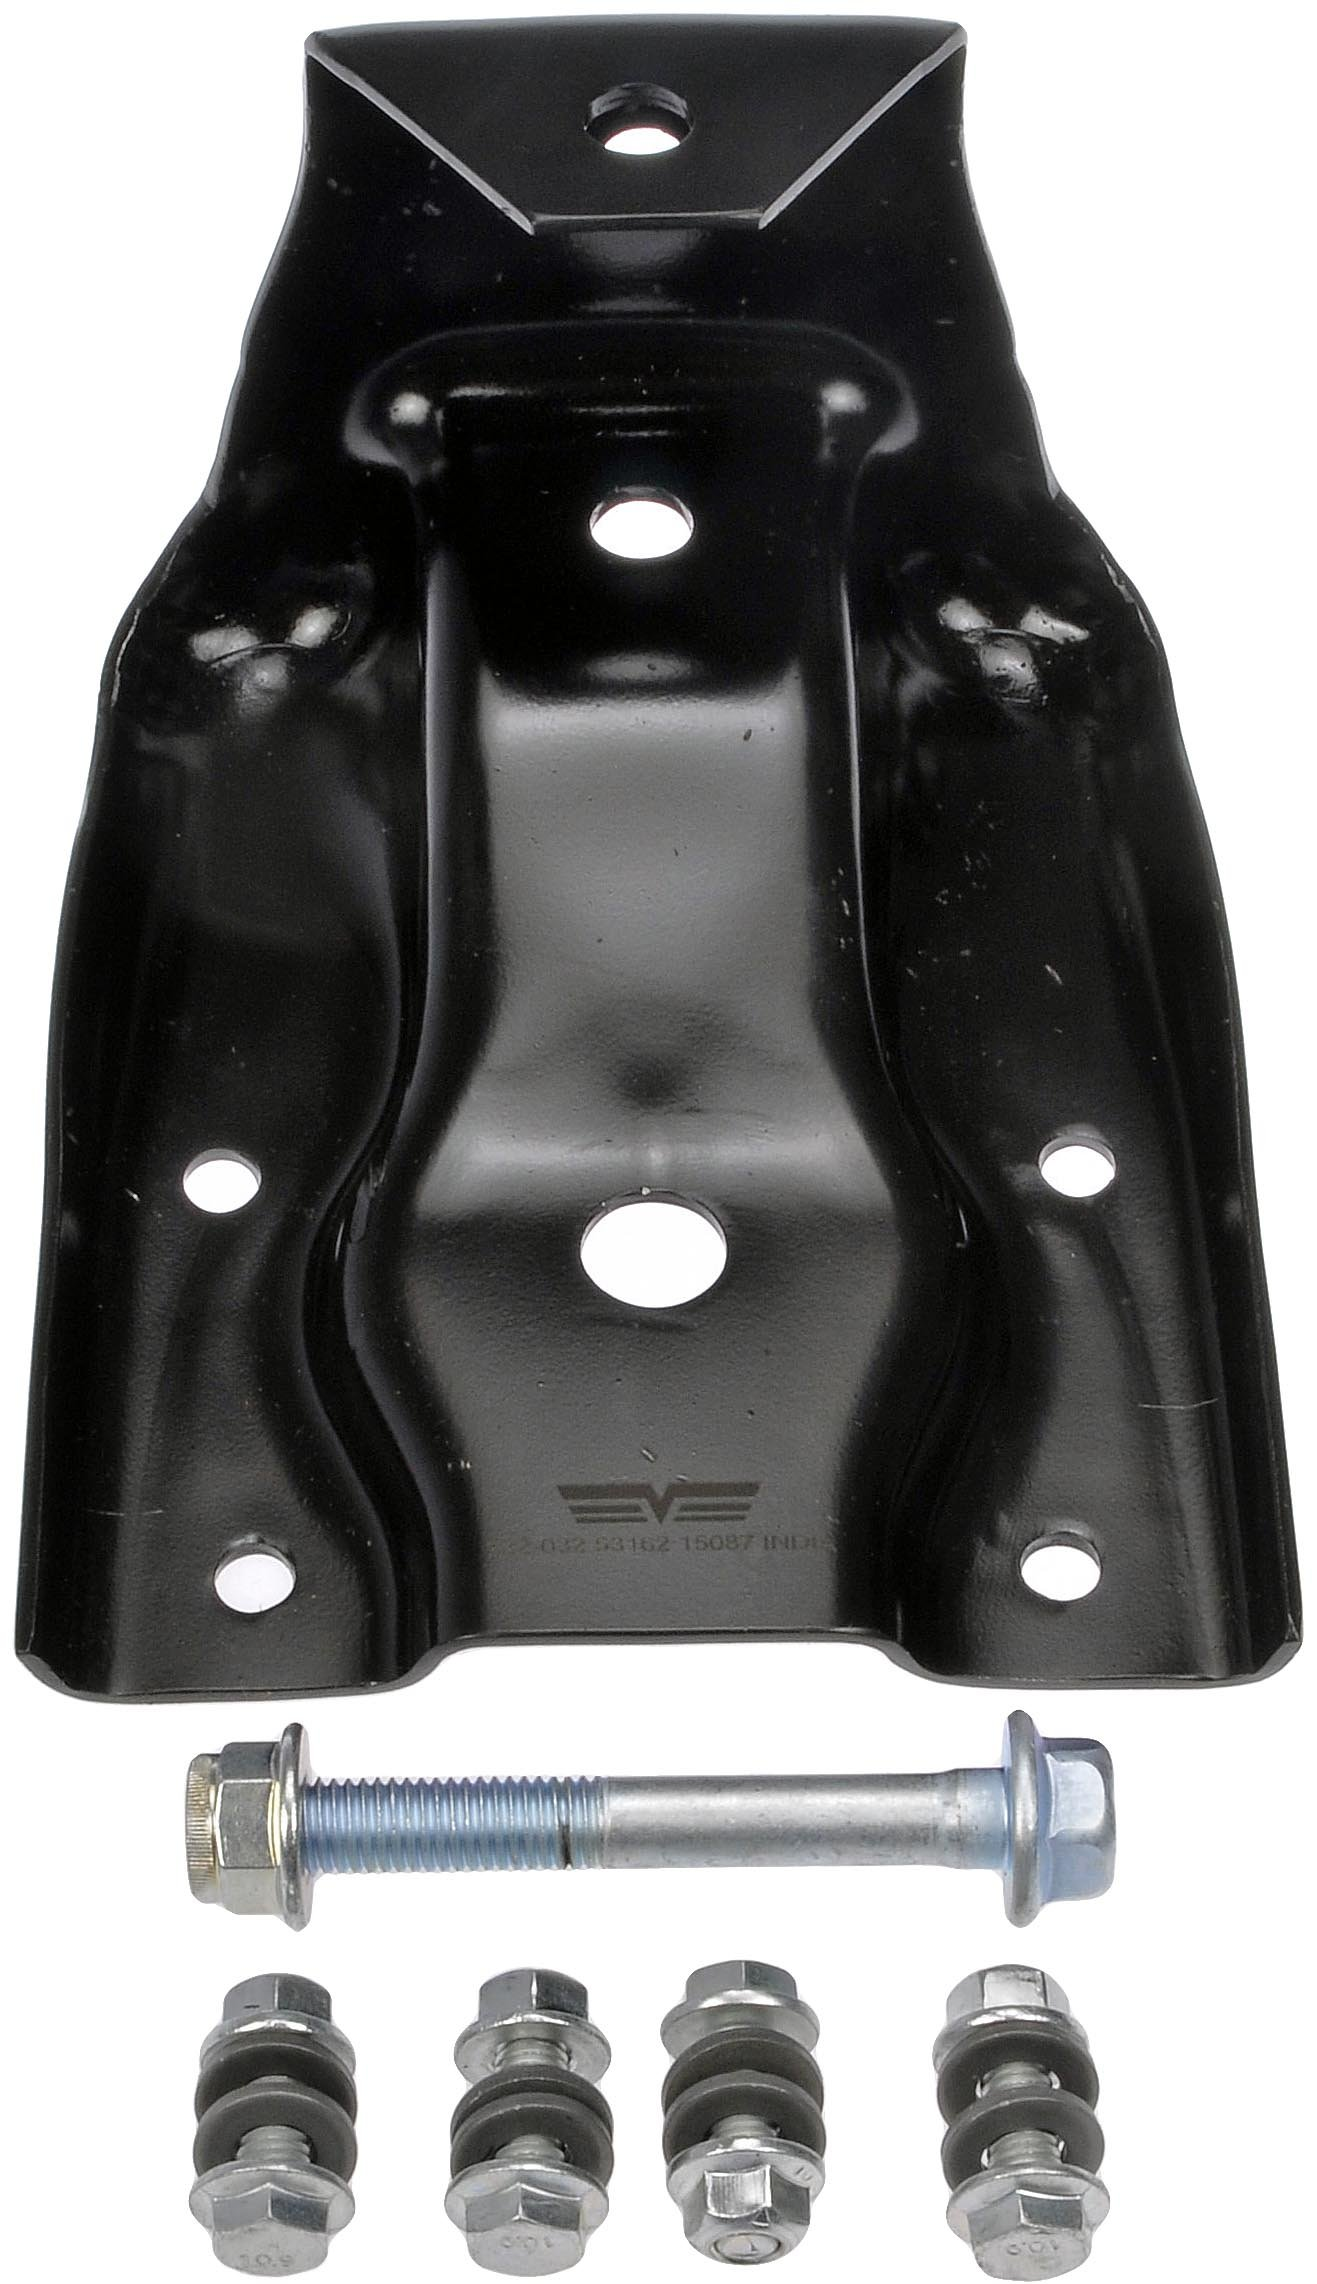 Dorman 722-083 Rear Position Leaf Spring Shackle Kit